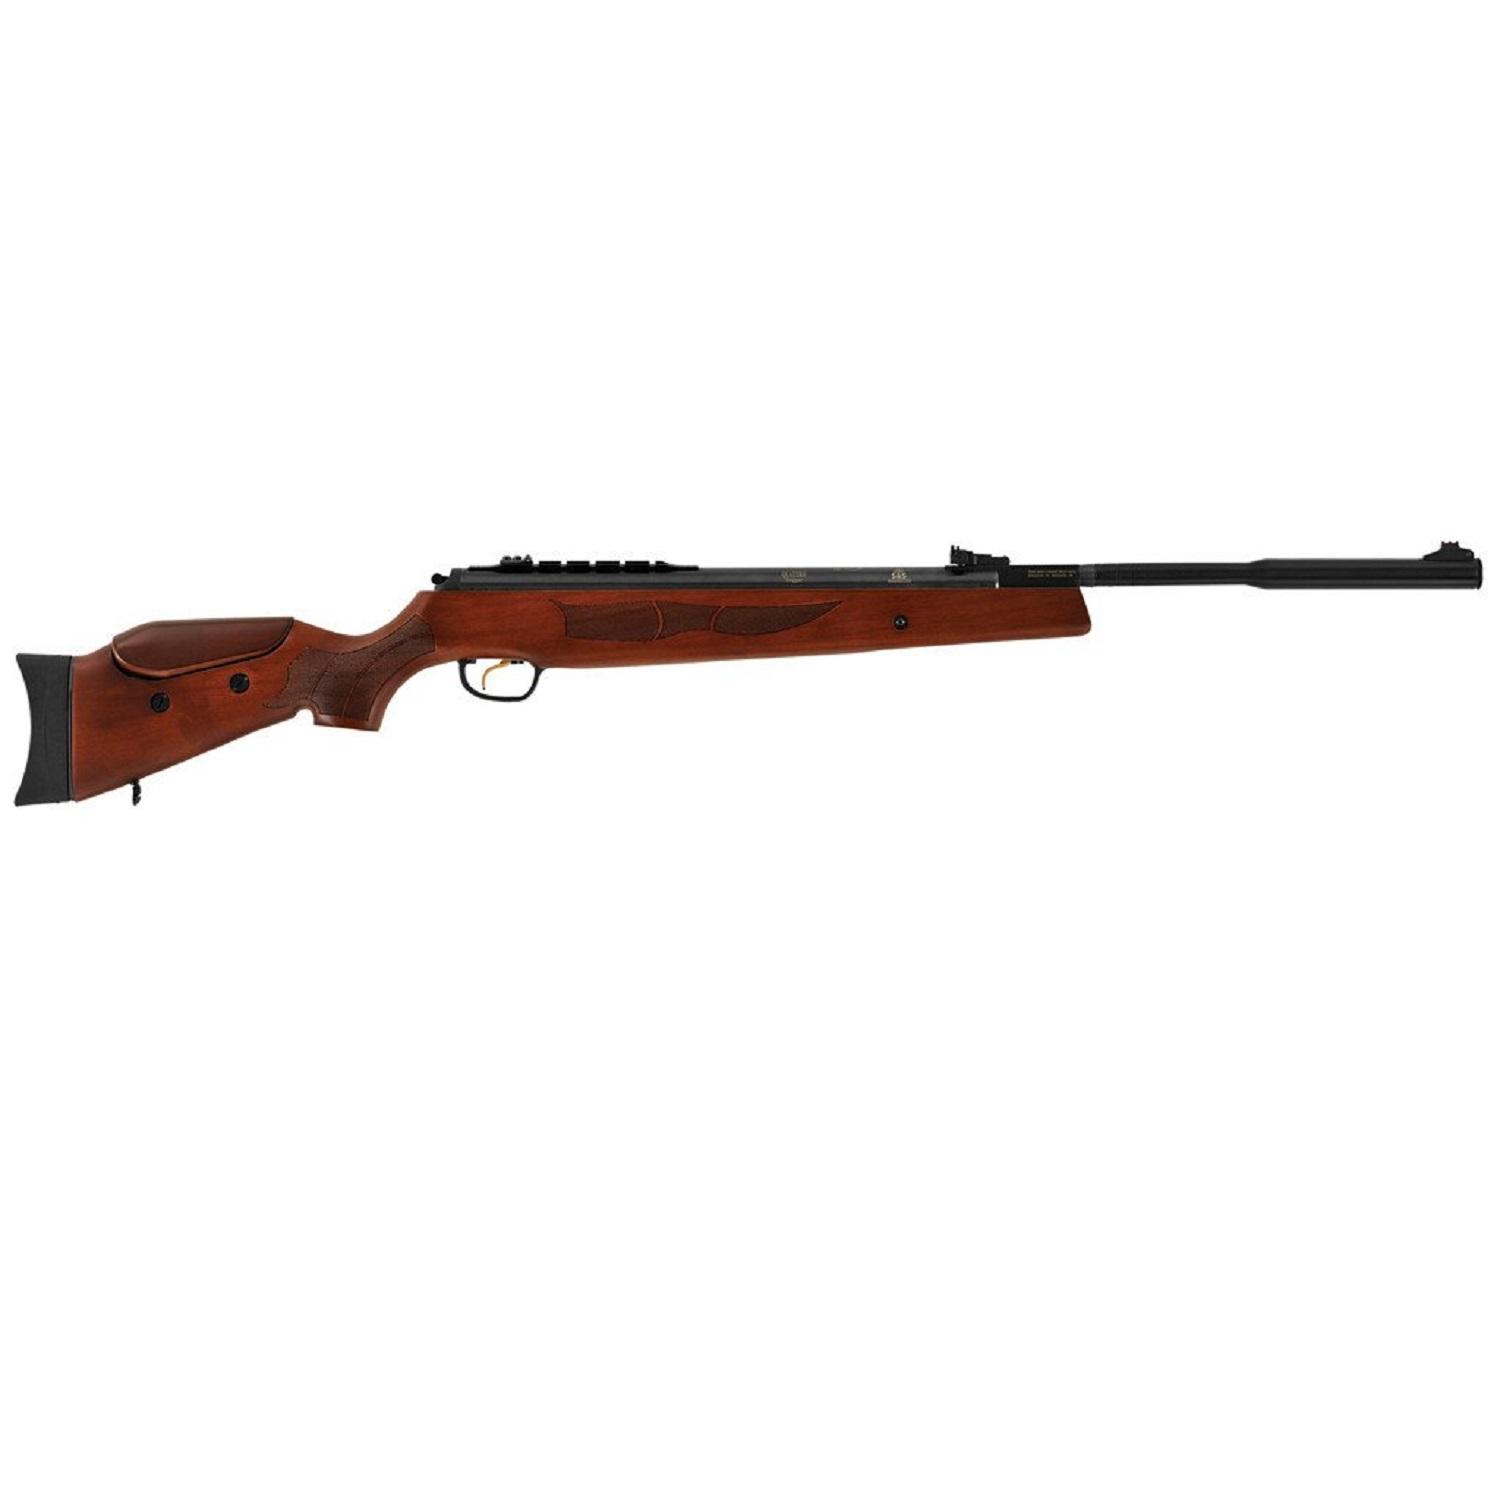 Hatsan Model 135 Vortex QE .22 Caliber Air Rifle